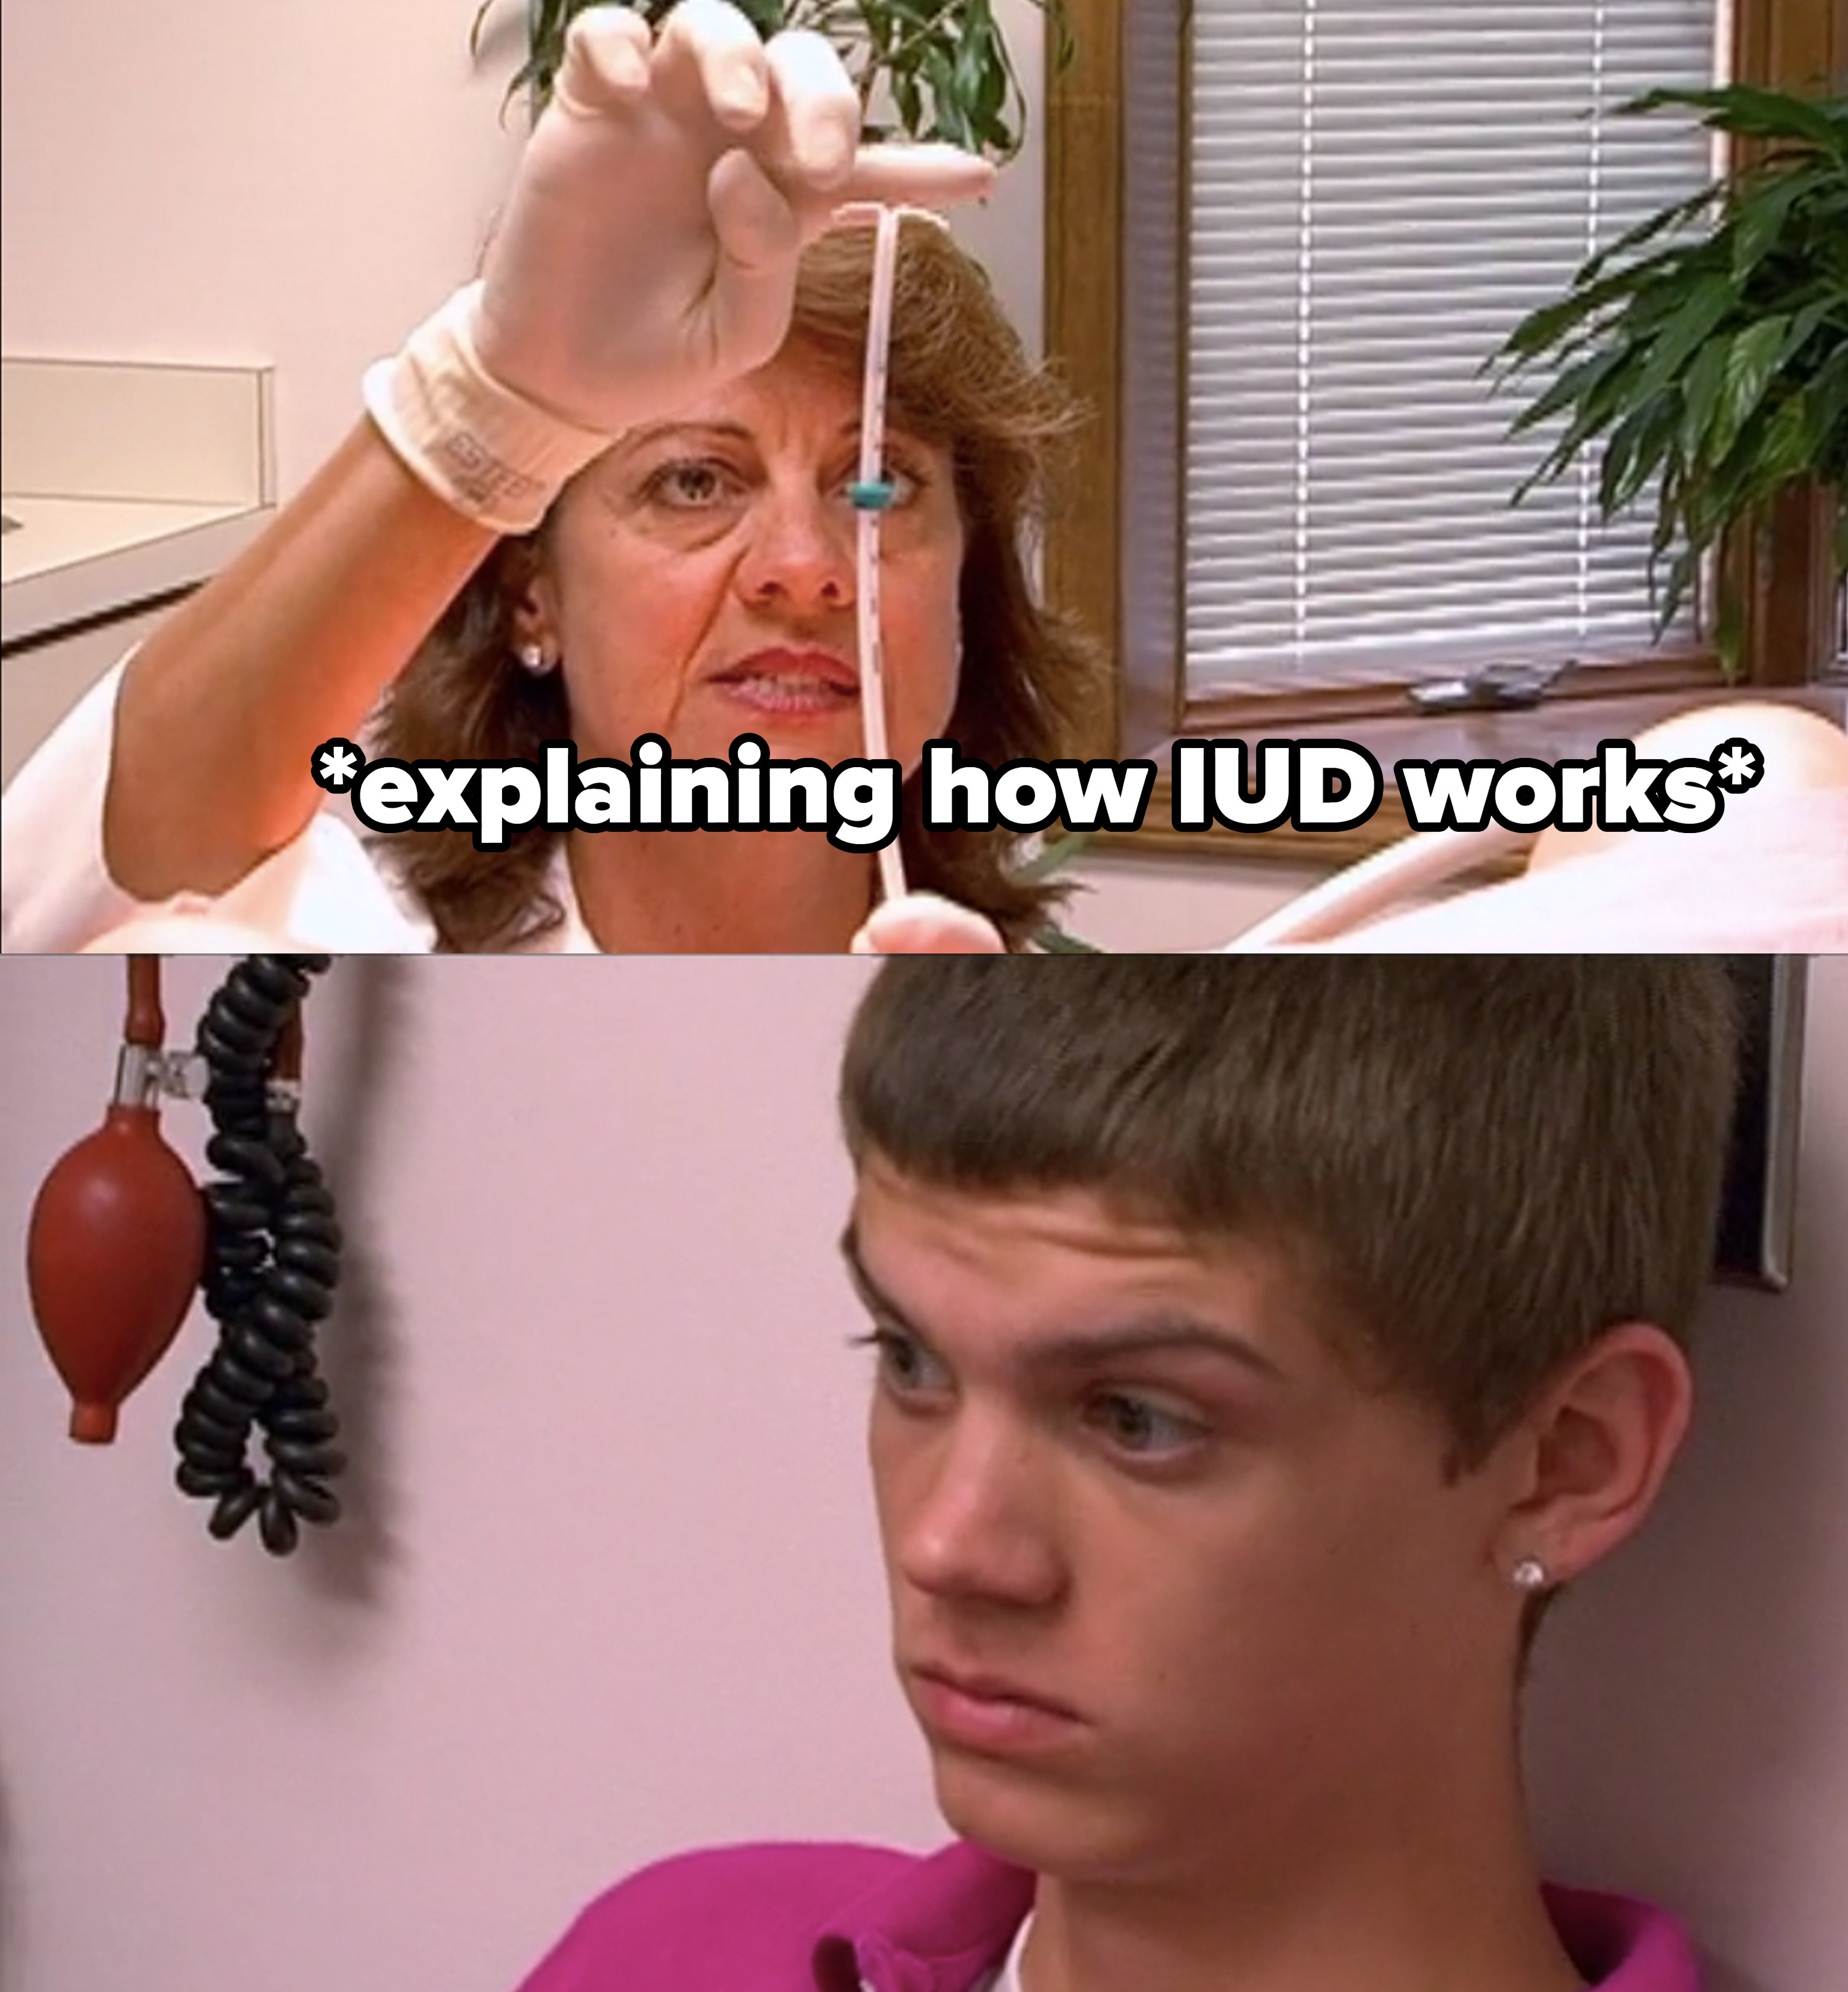 Tyler makes a face as the doctor explains the IUD